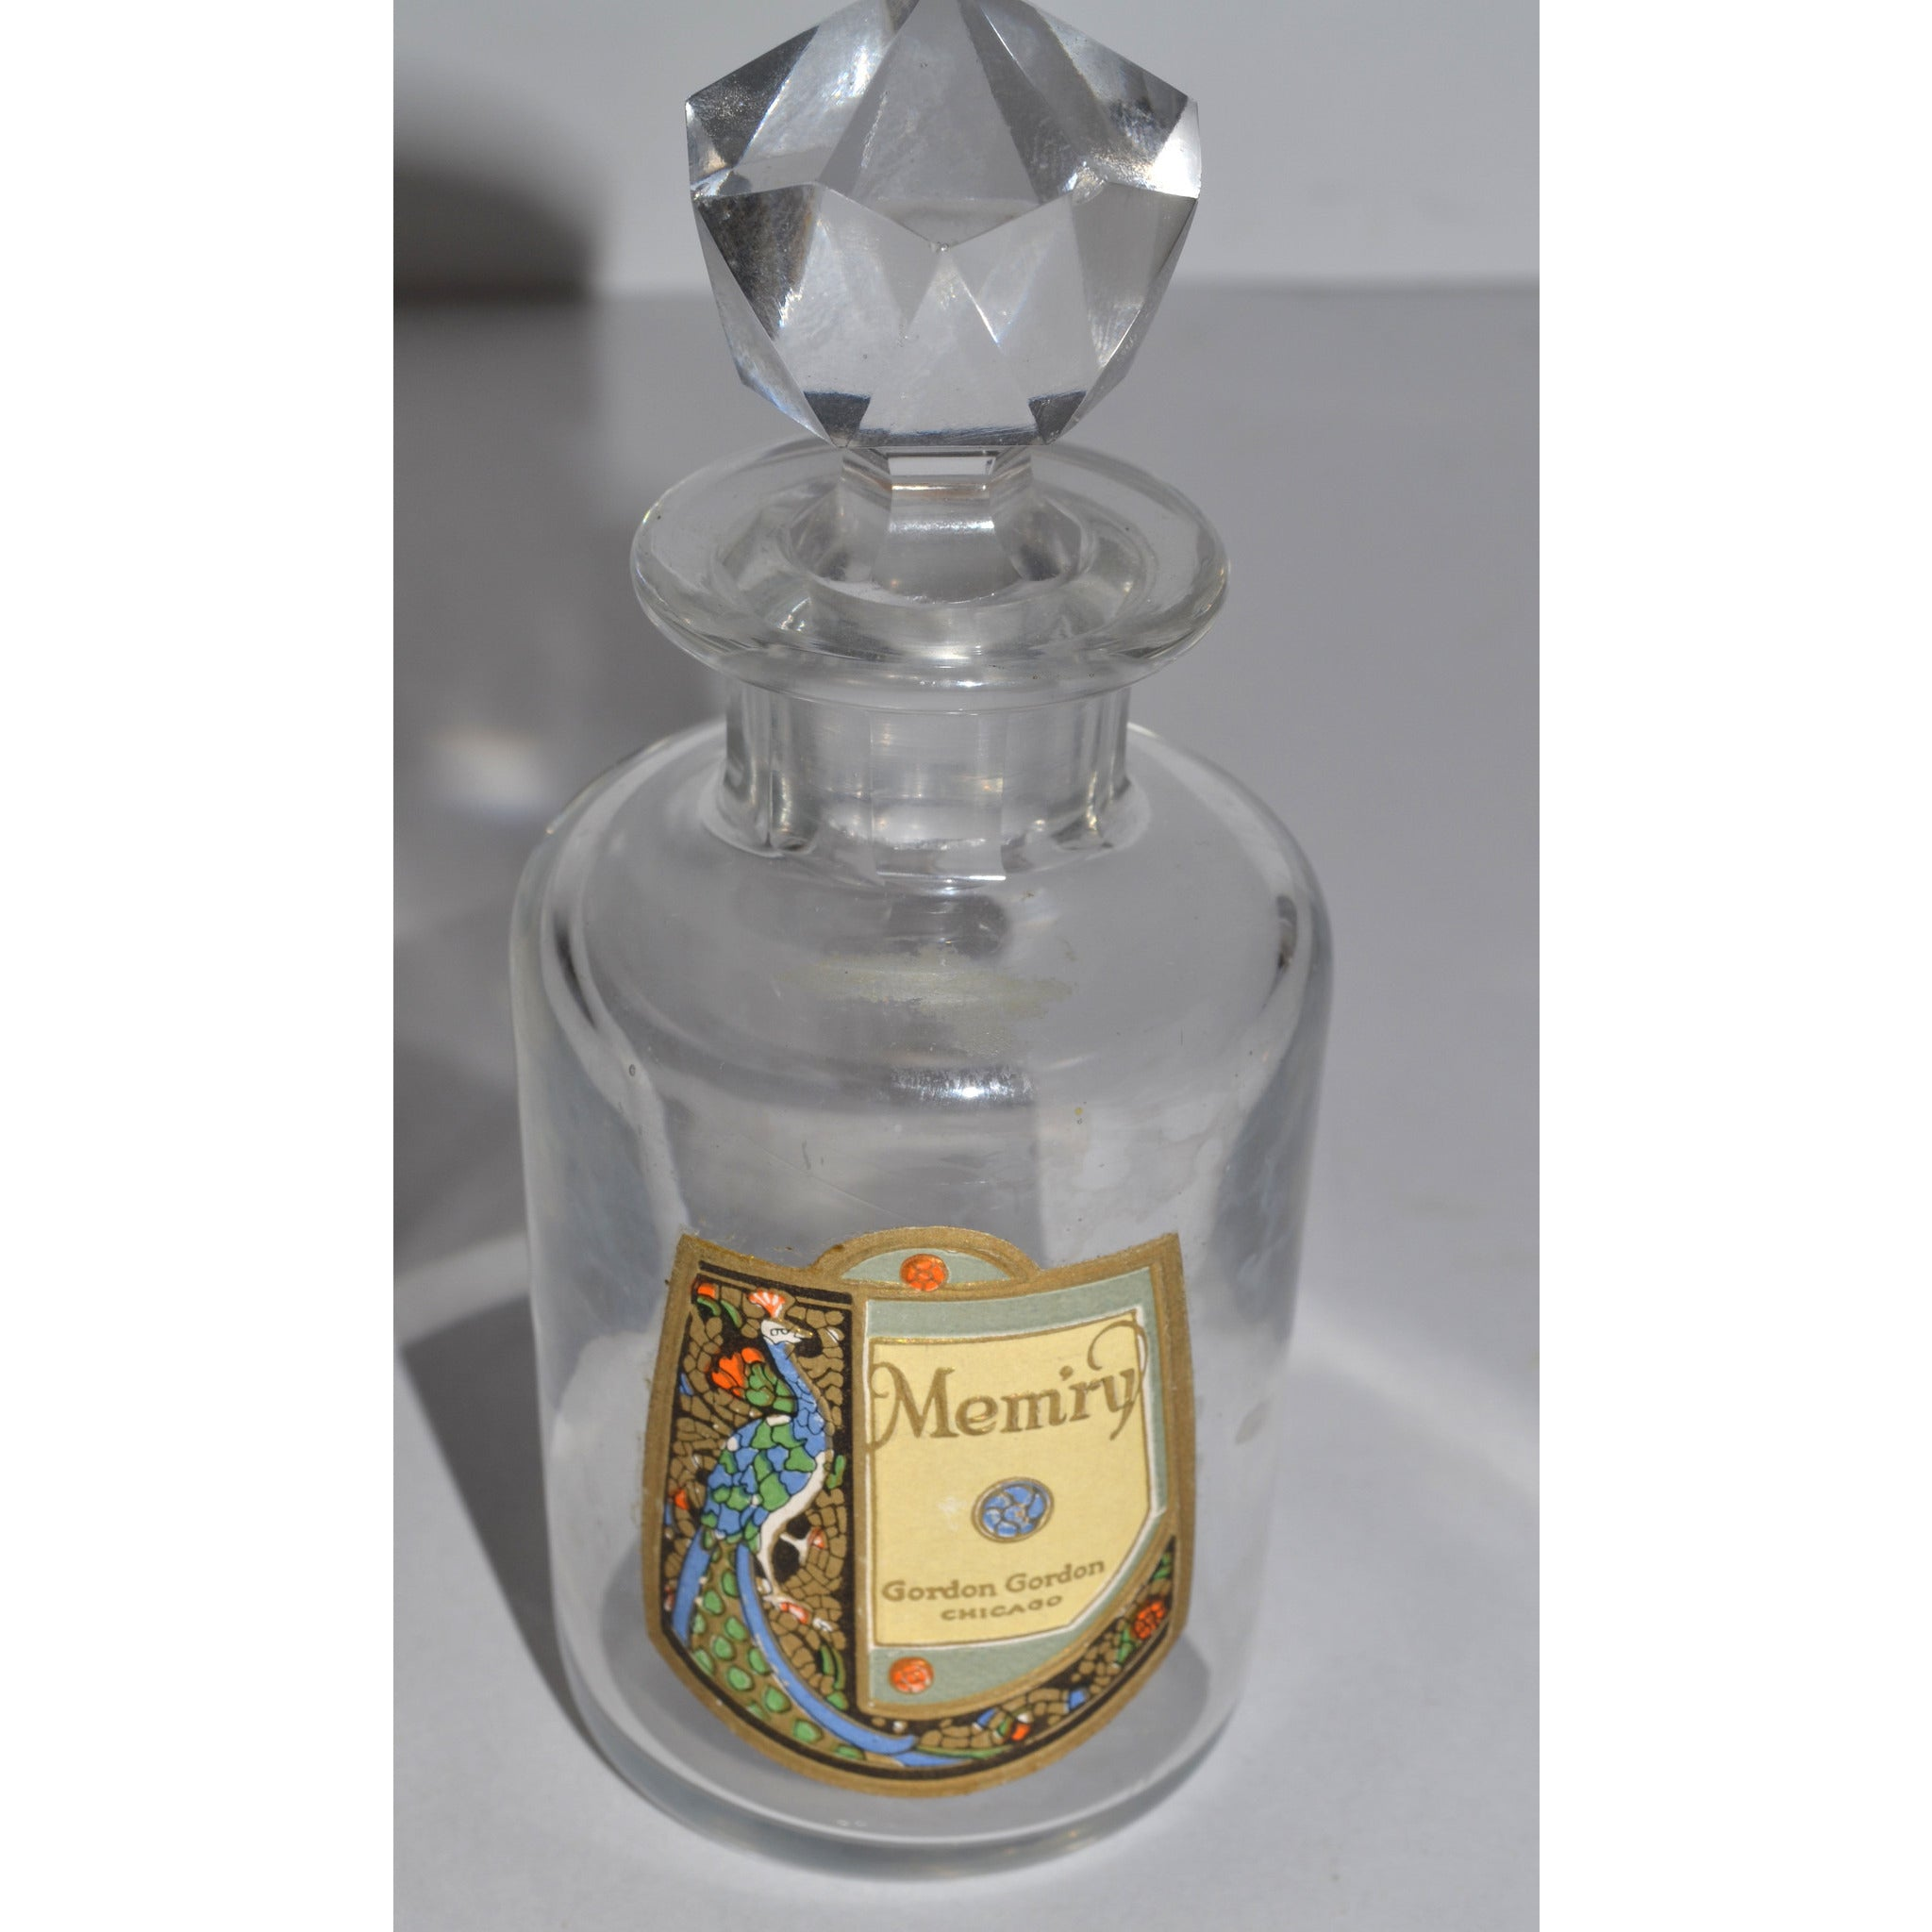 Antique Mem'ry Perfume Bottle By Gordon Gordon